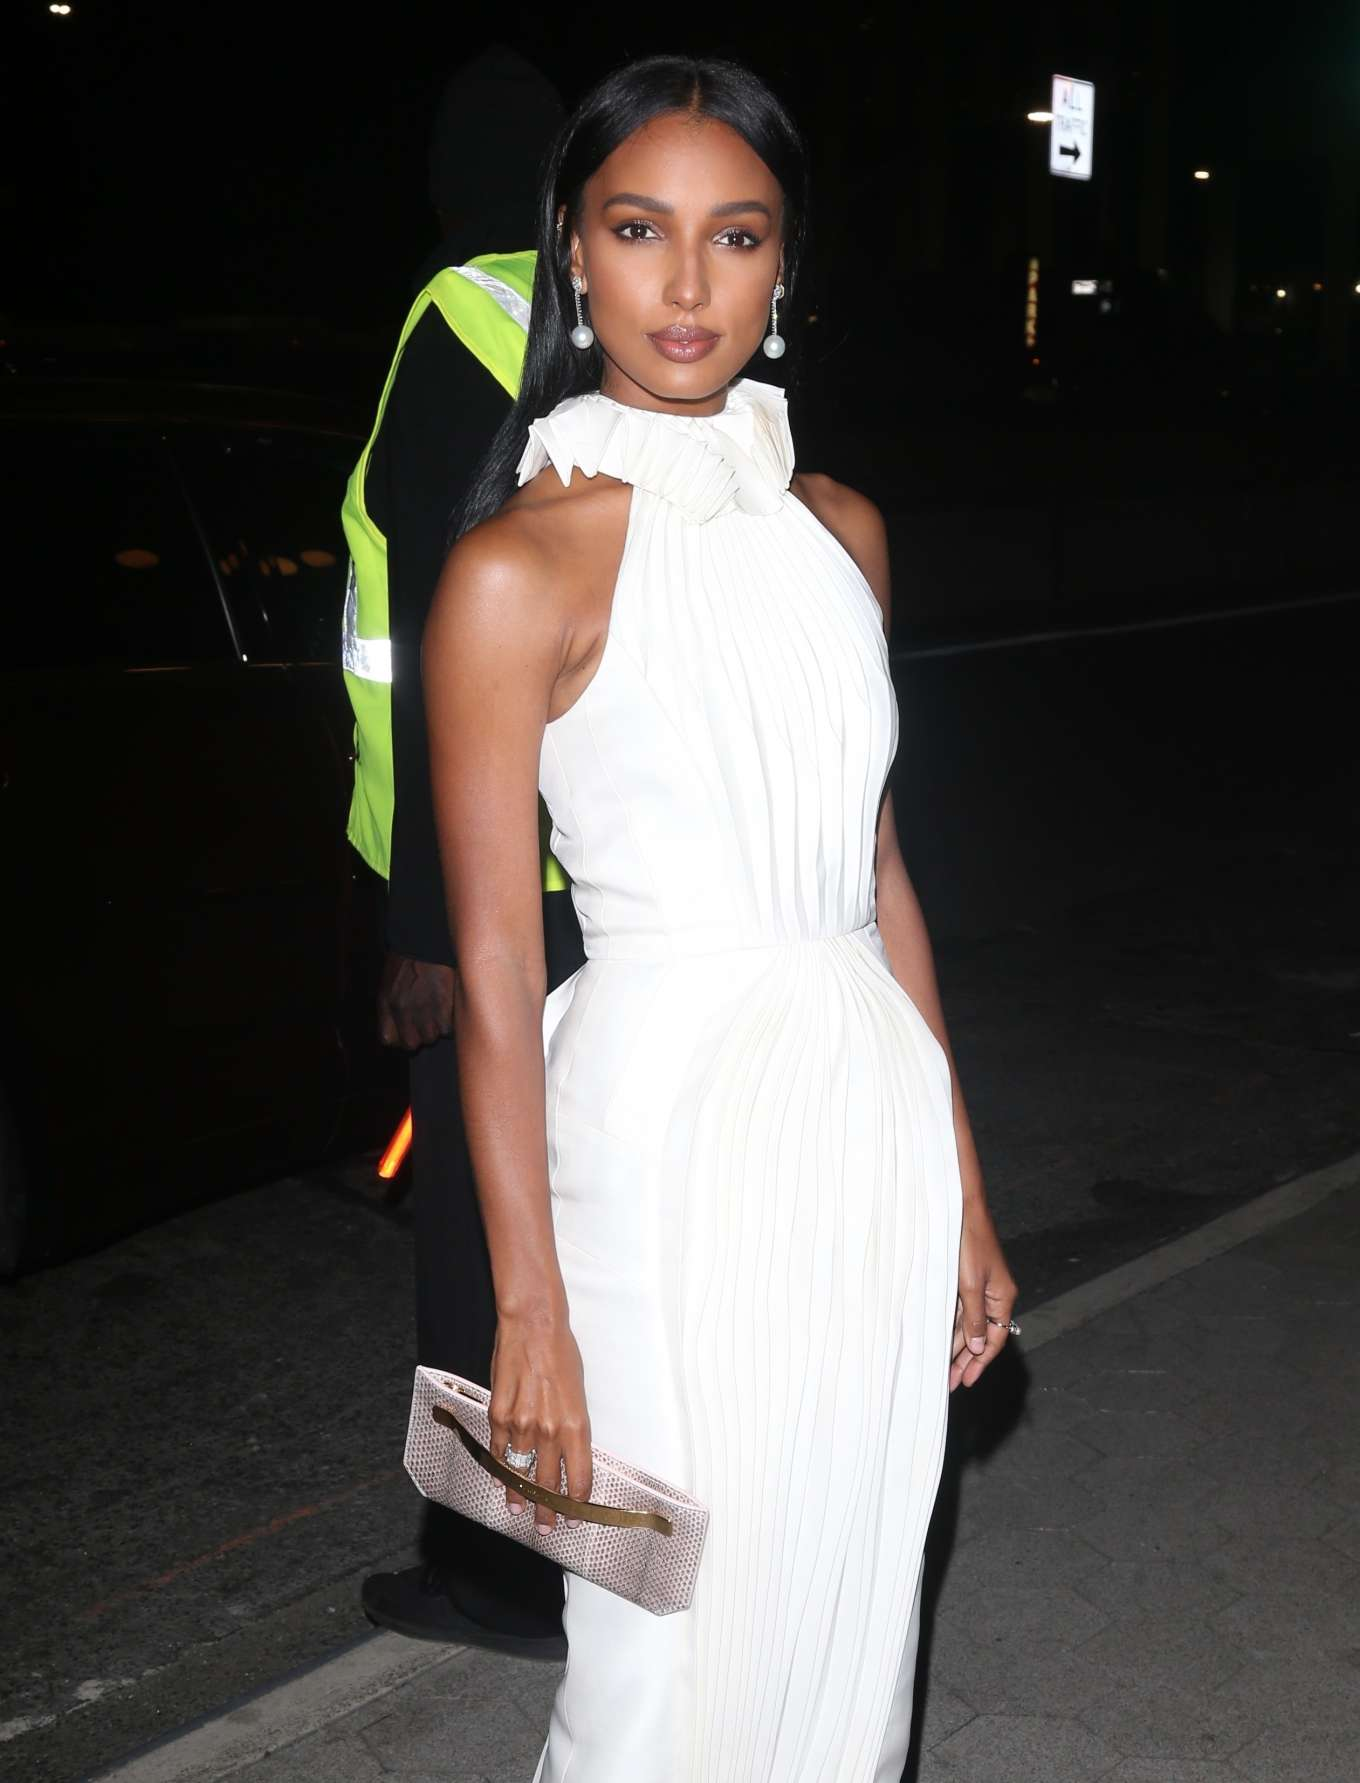 Jasmine Tookes - Arrives at CFDA/Vogue Fashion Fund 2019 Awards in NYC